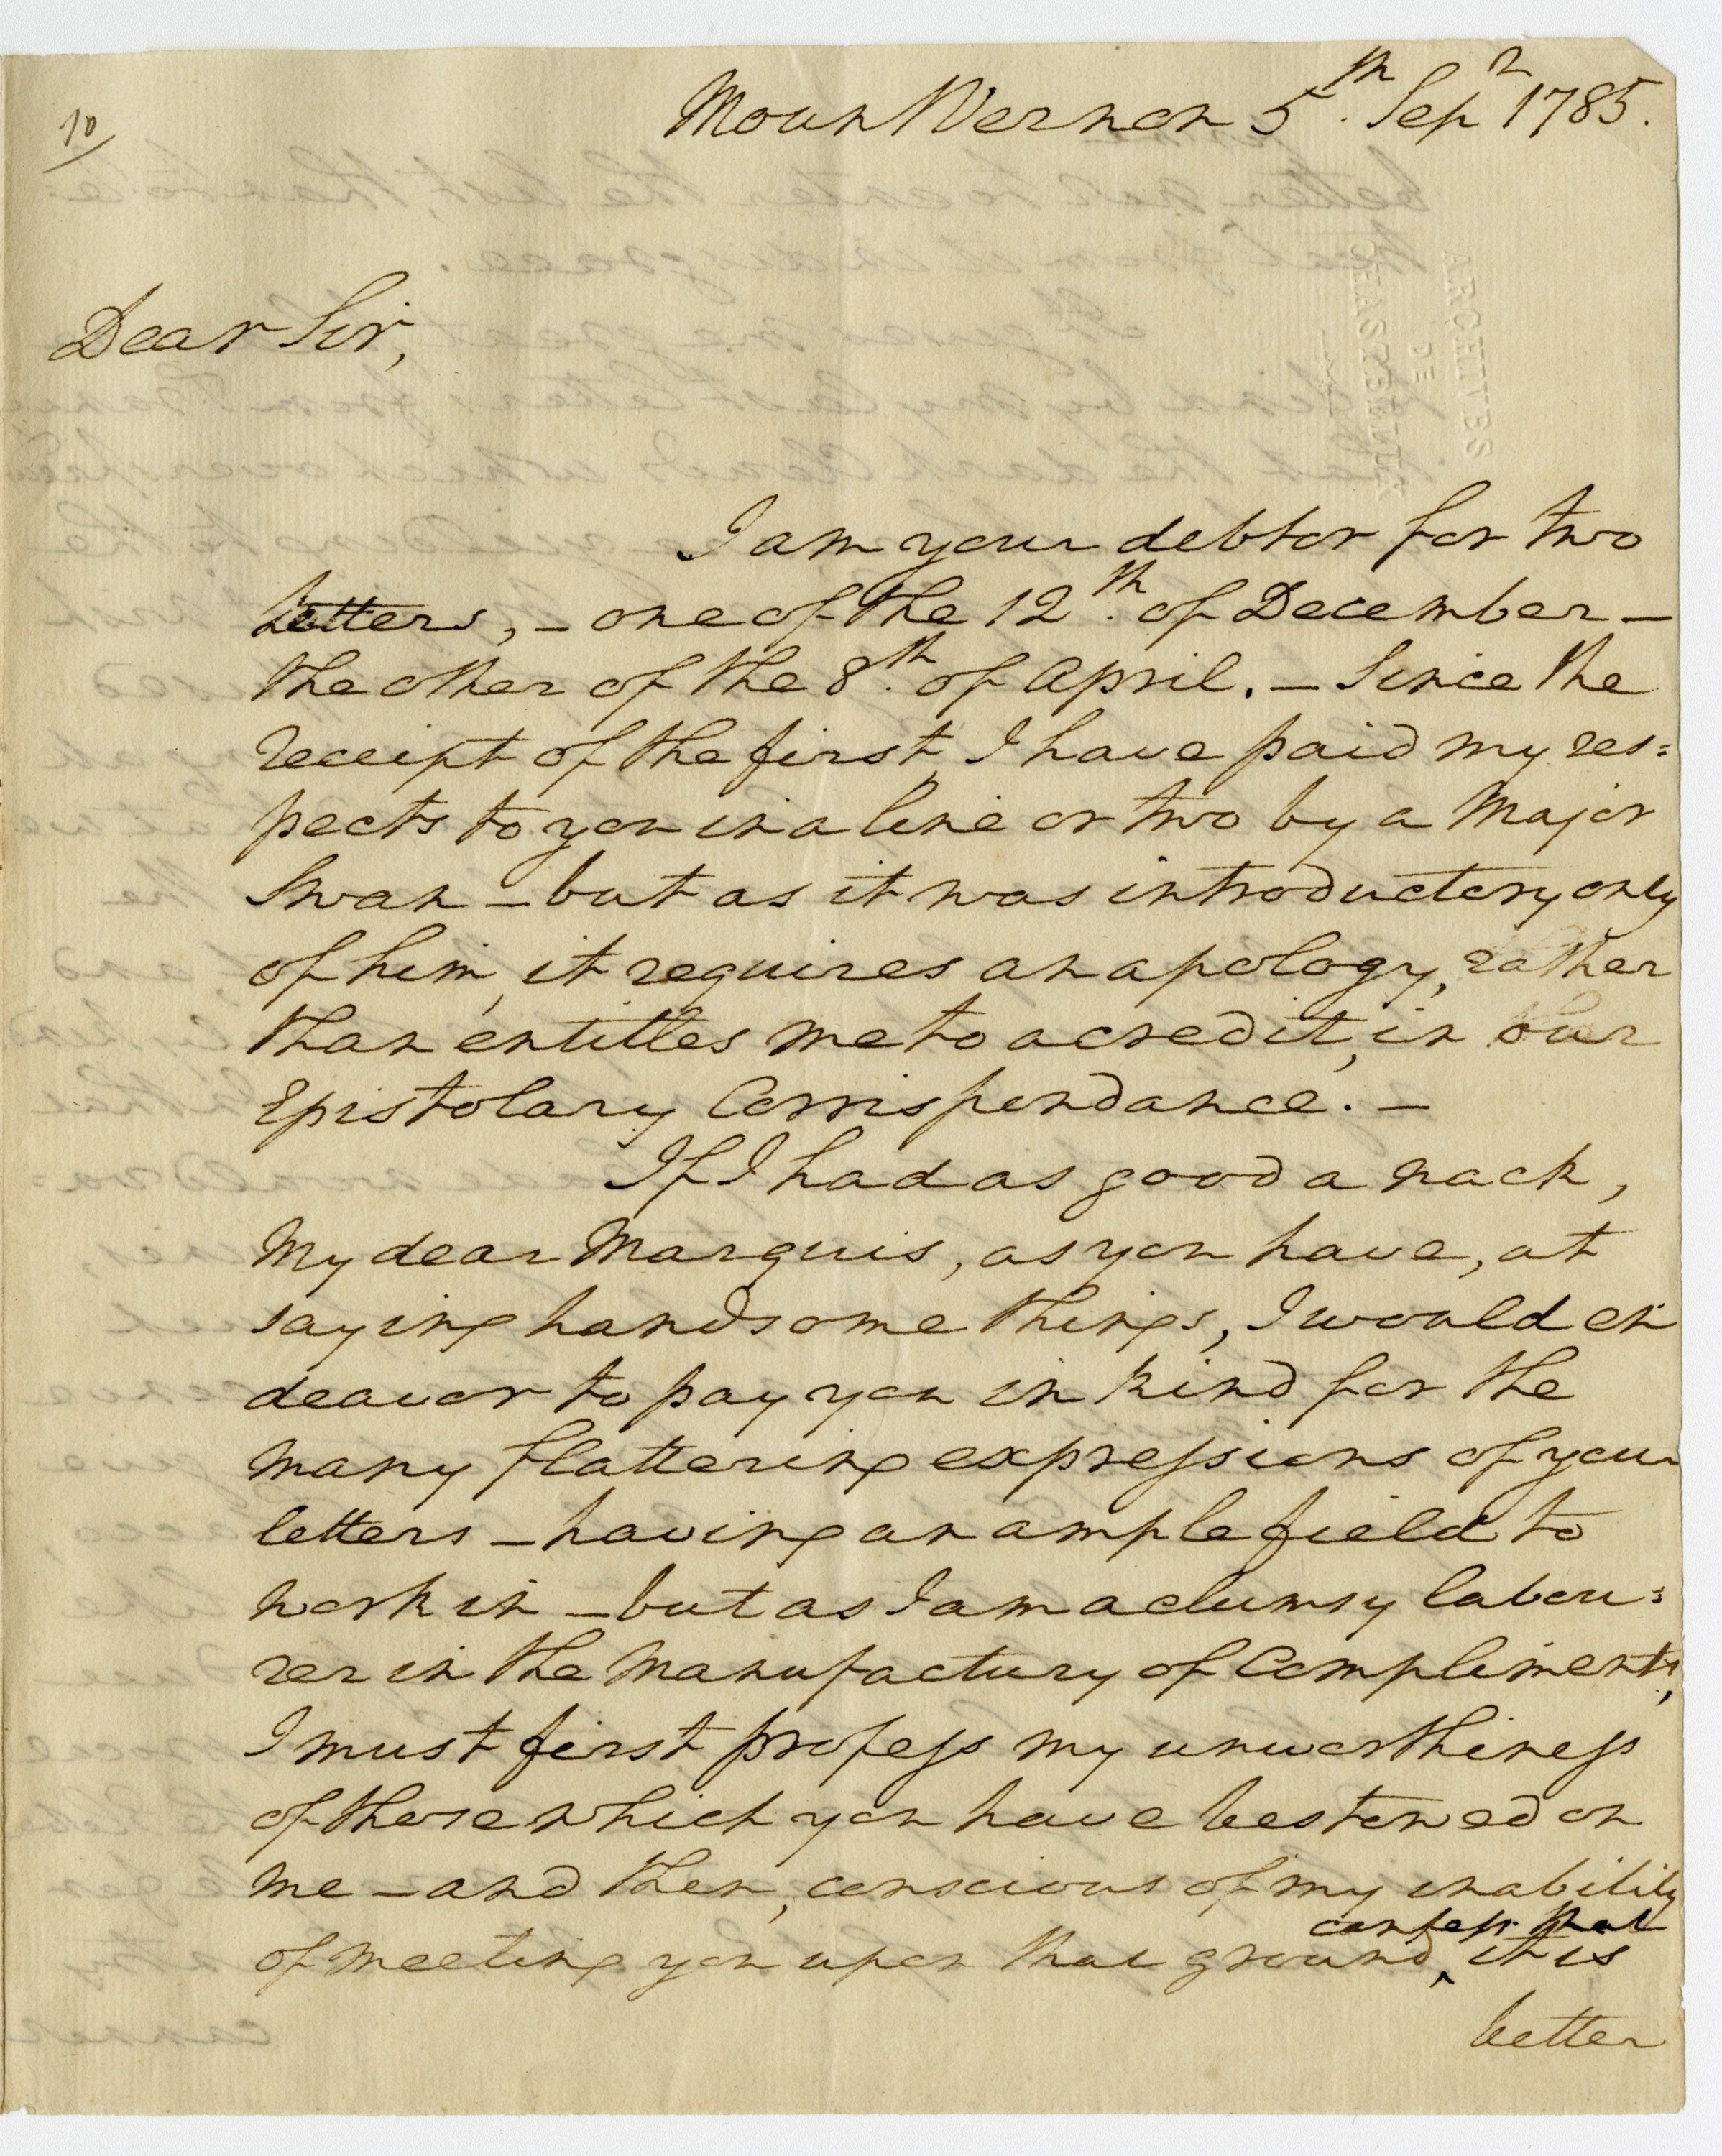 George Washington to Chastellux, 5 September 1785. Washington Library at Mount Vernon. Courtesy of The Life Guard Society of Historic Mount Vernon, Ambassador and Mrs. Nicholas F. Taubman, Mr. and Mrs. James C. Meade.